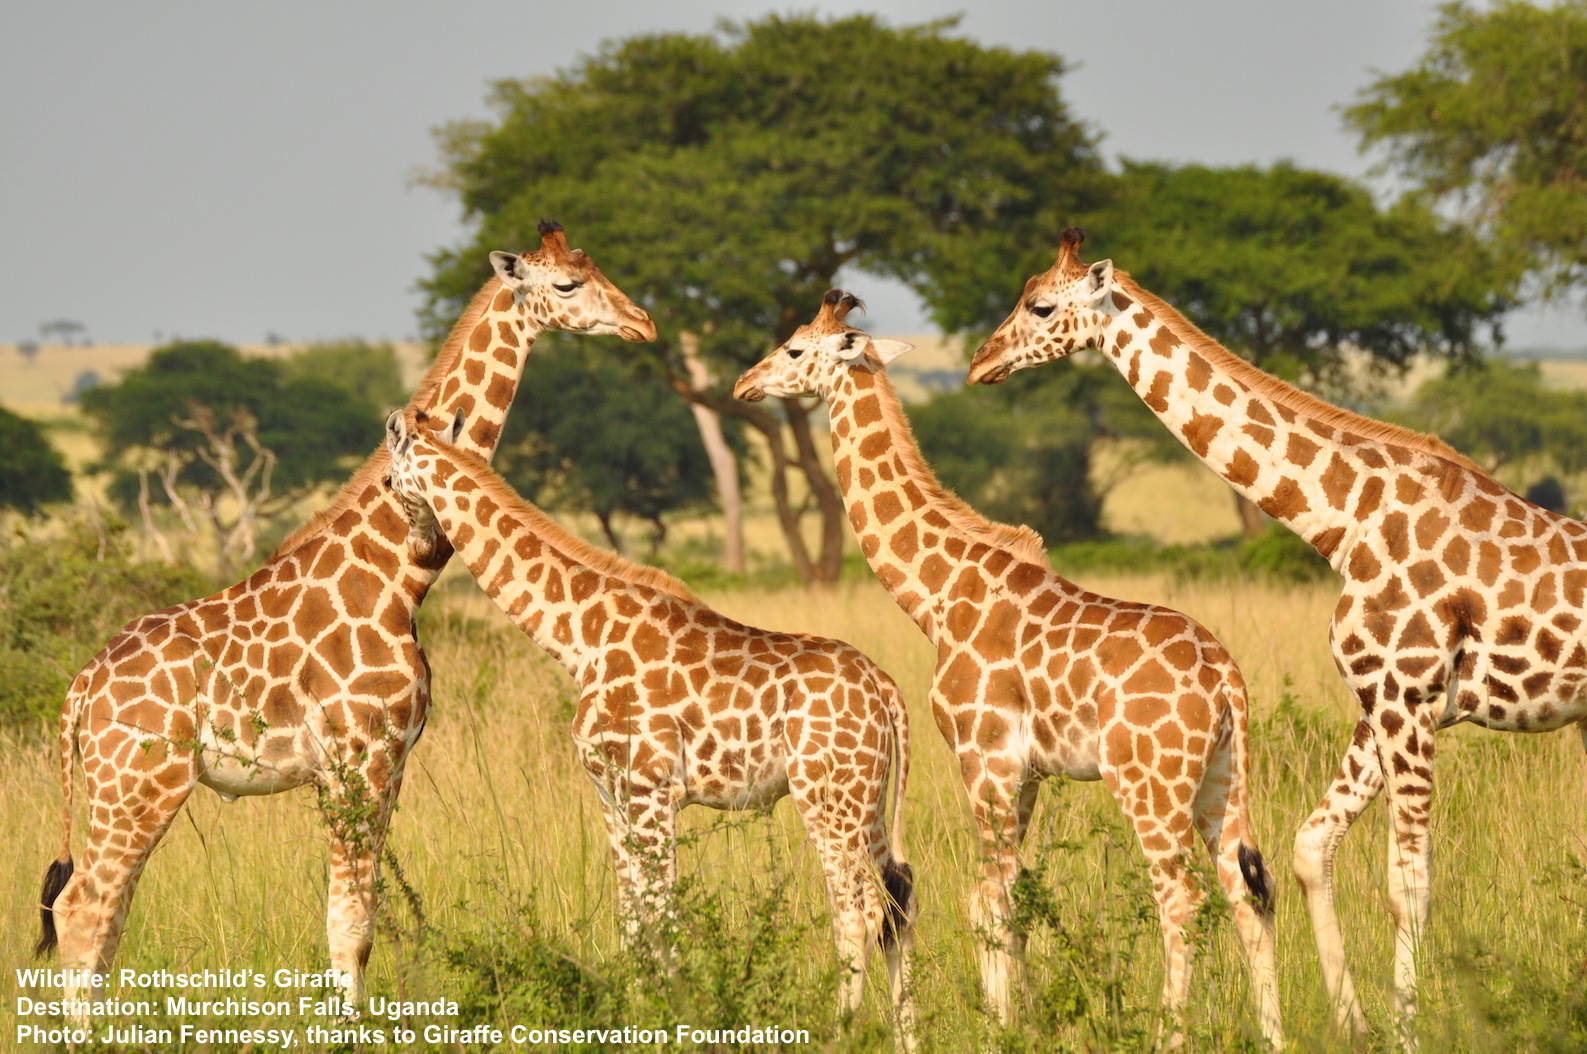 A herd ofWHAT WAS CALLED Rothchild's giraffe WHEN THIS IMAGE WAS TAKEN in Murchison Falls, Uganda. Image Julian Fennesy with thanks to Giraffe Conservation Foundation.